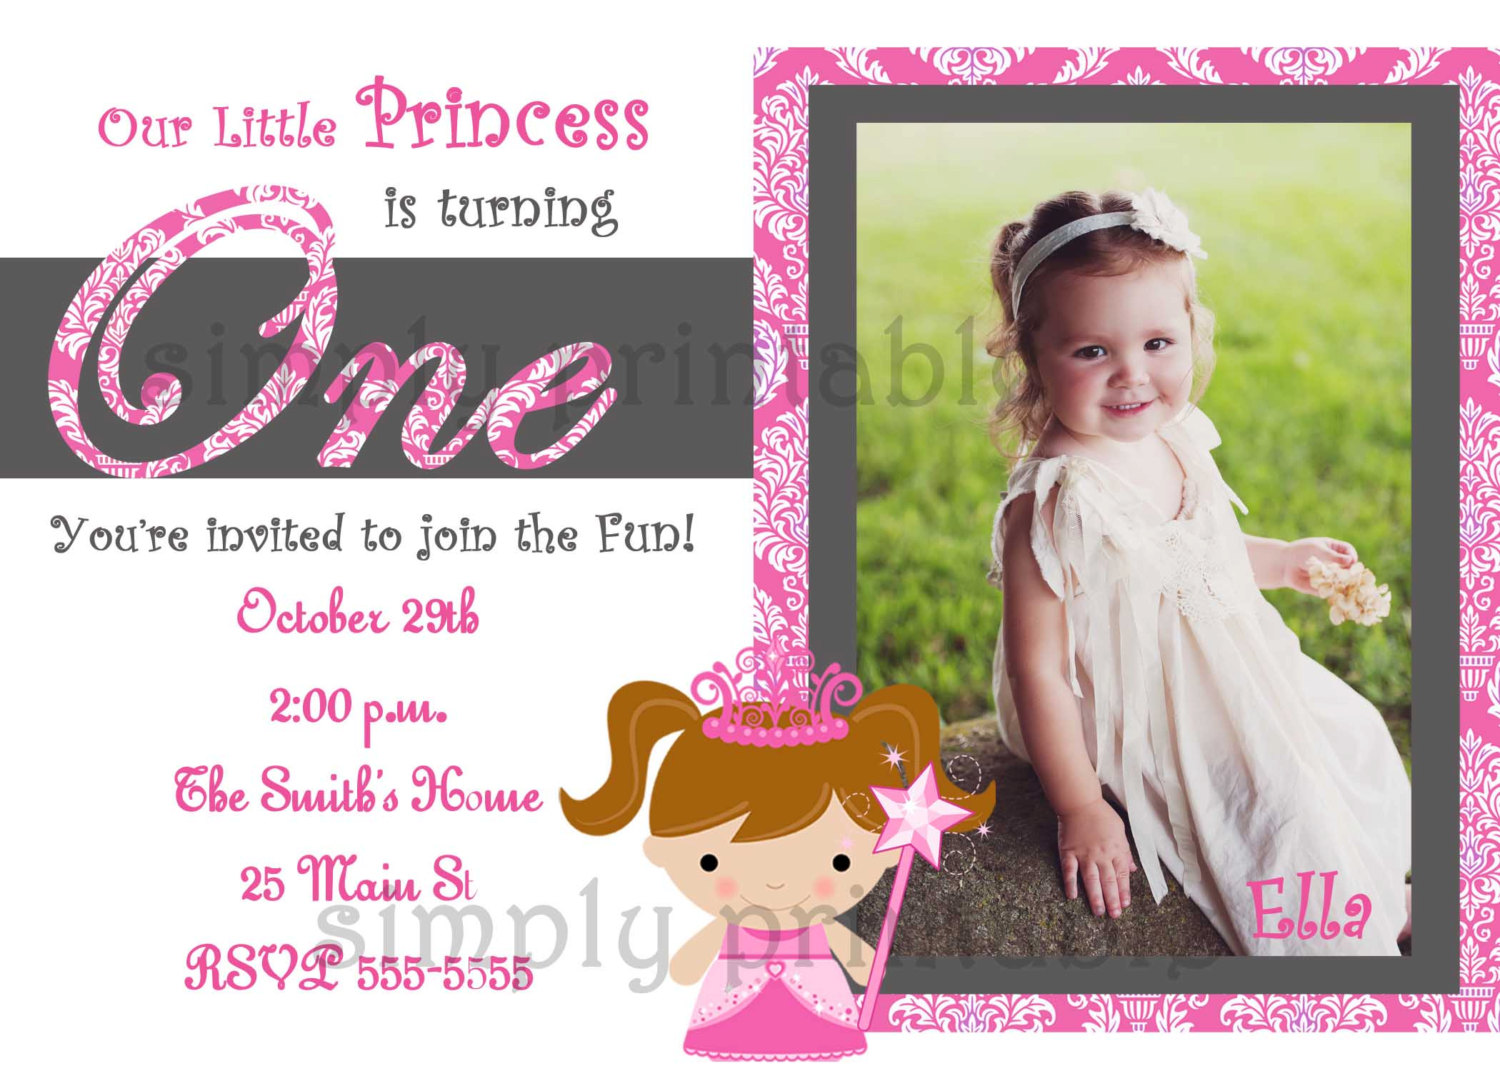 1st birthday party invitation card template free ; 1st-birthday-invitations-girl-princess-1st-birthday-party-invitations-girls-with-photo-baby-children-celebrate